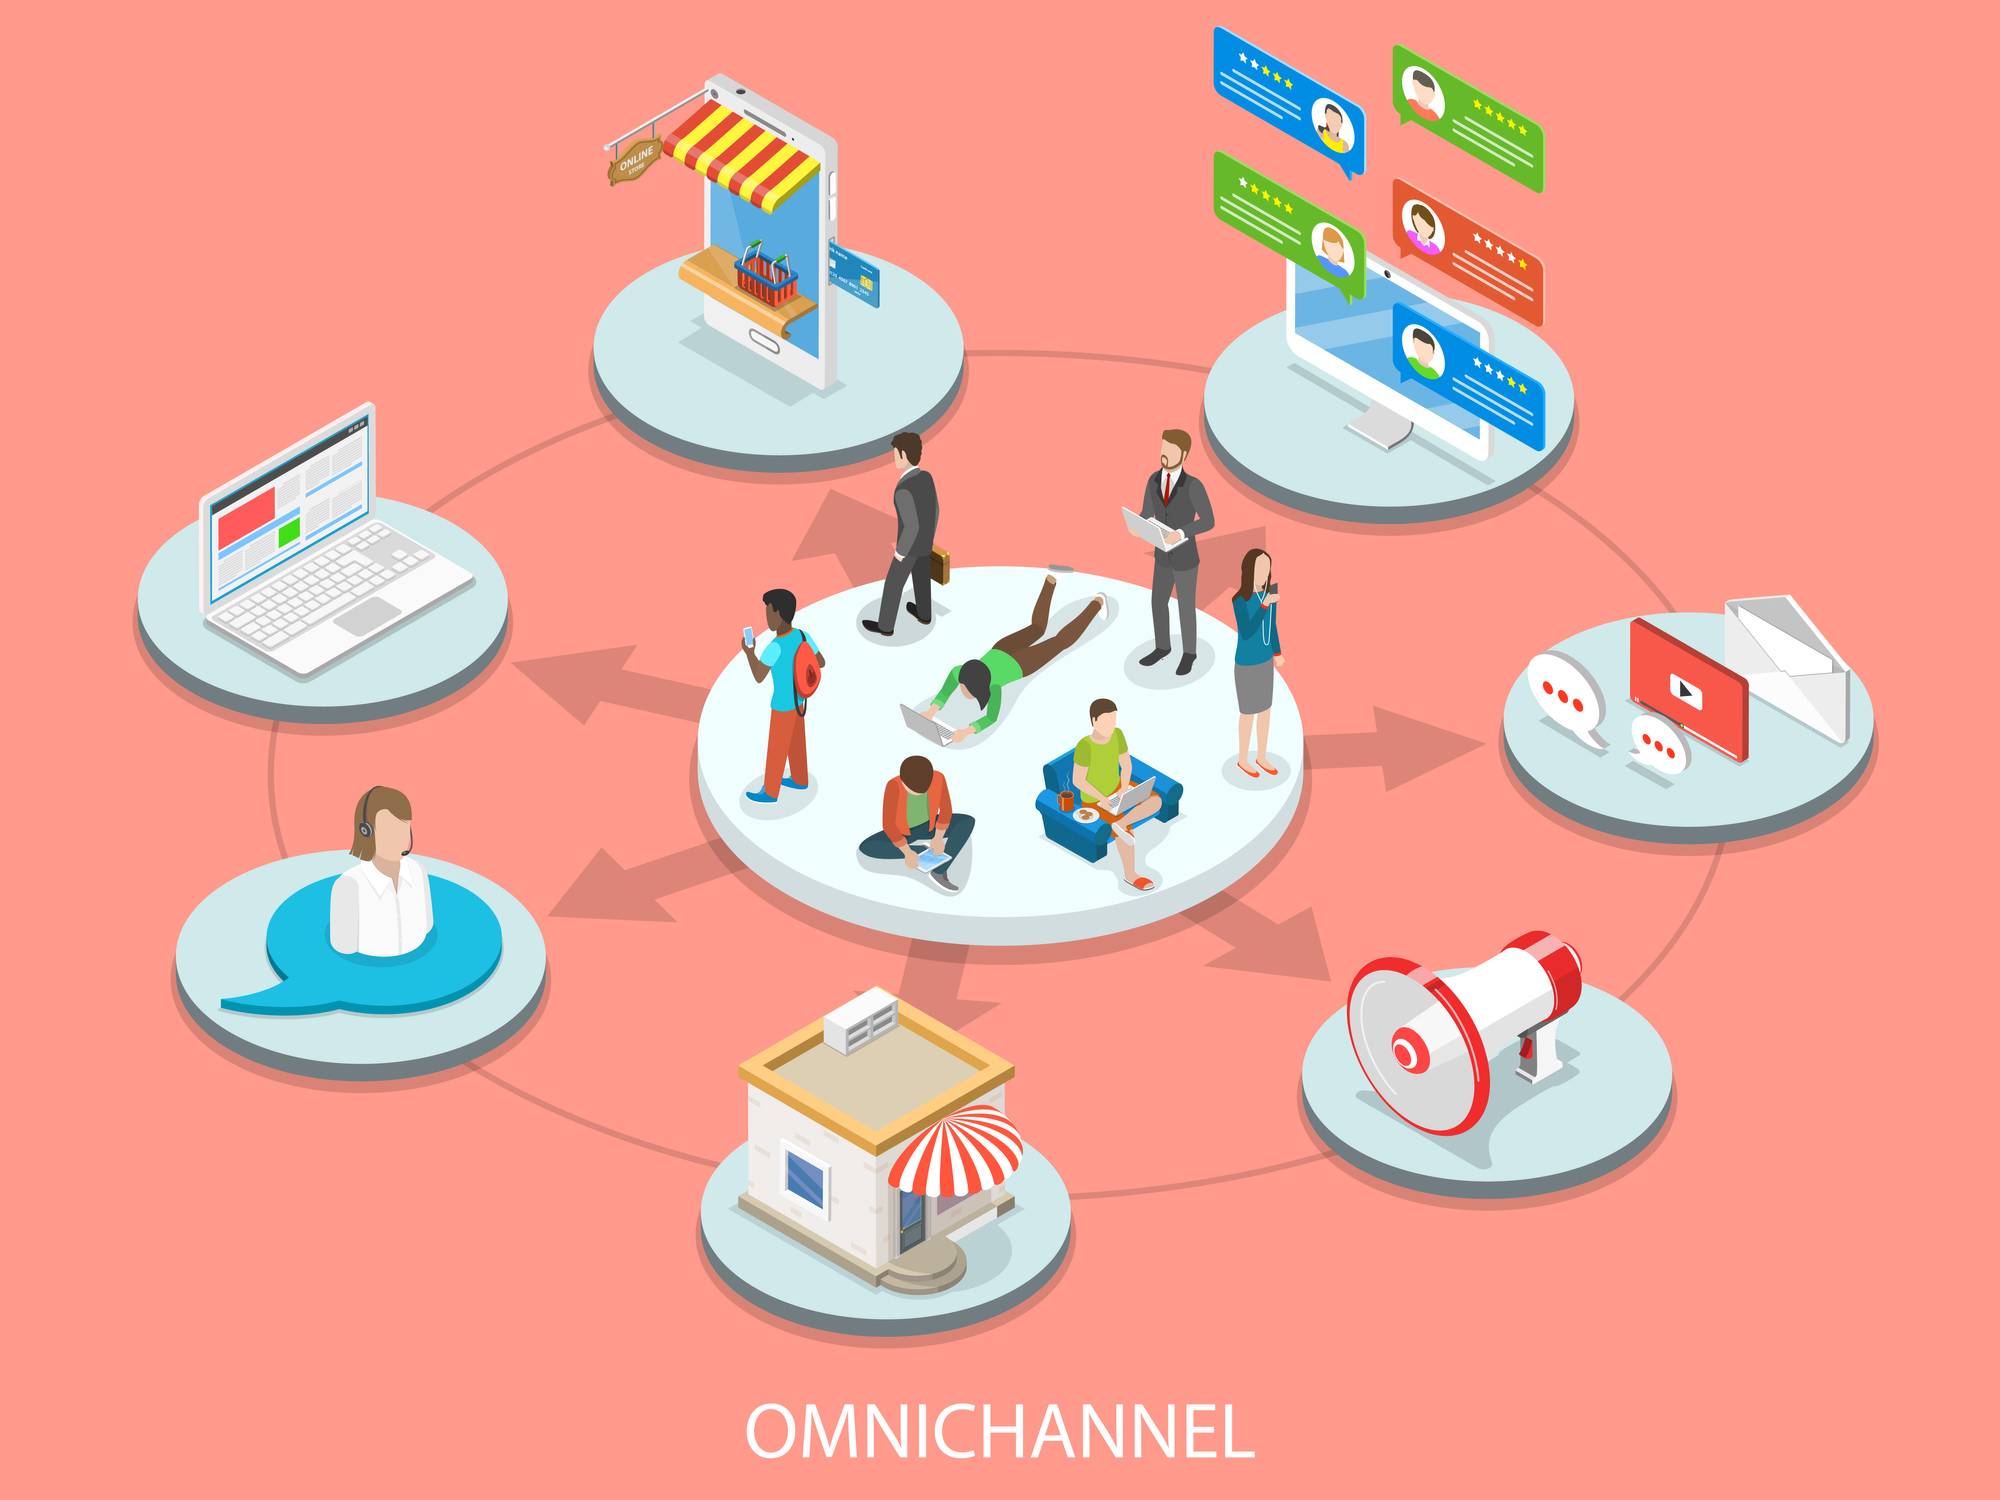 What marketing channels are used in multi-channel campaigns?